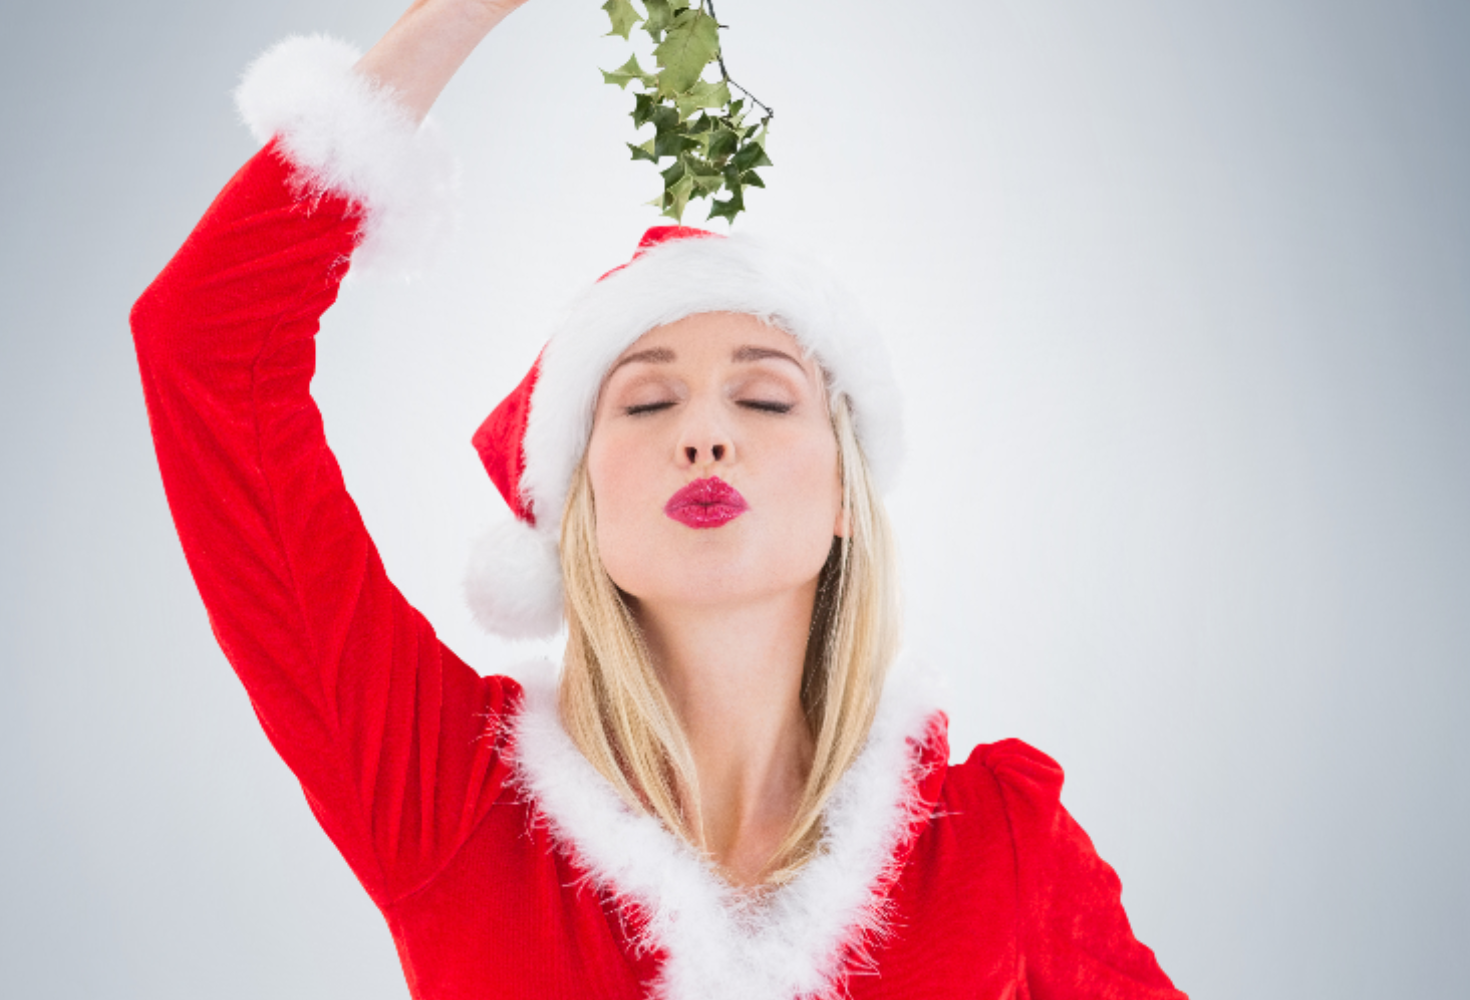 The Top Beauty Trends for the Holiday Season